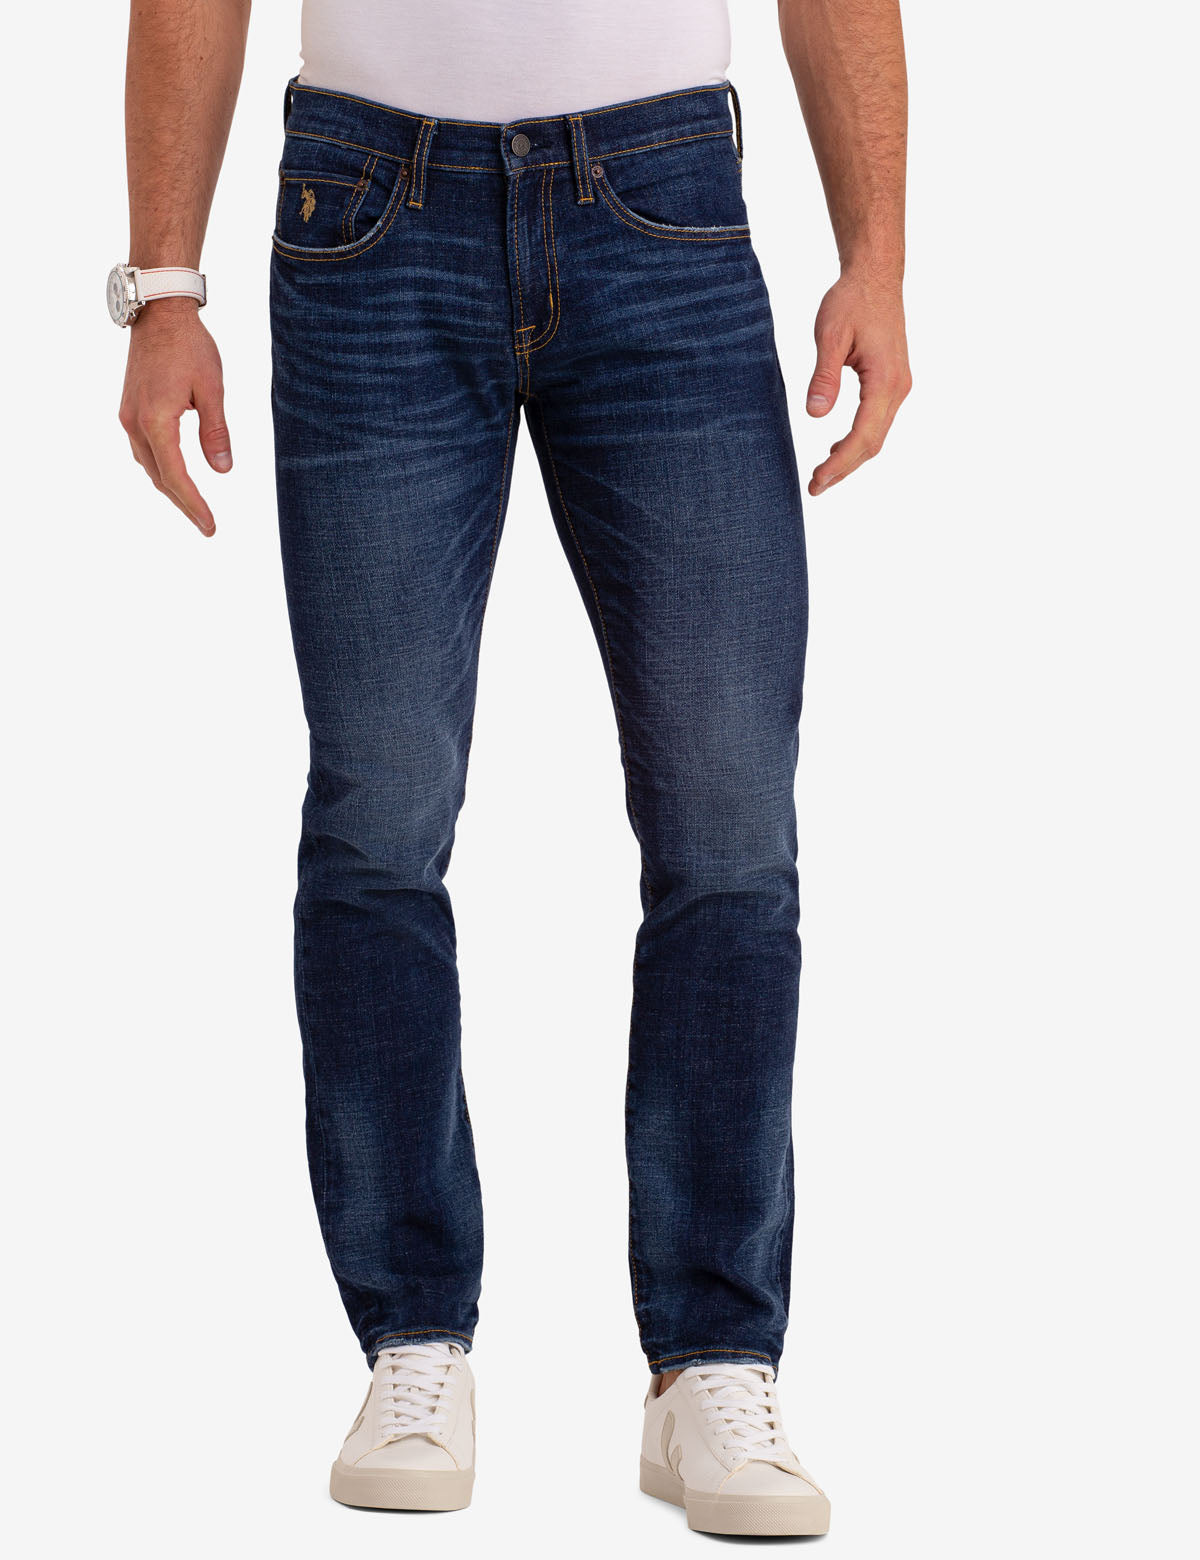 SLIM FIT JEANS - U.S. Polo Assn.